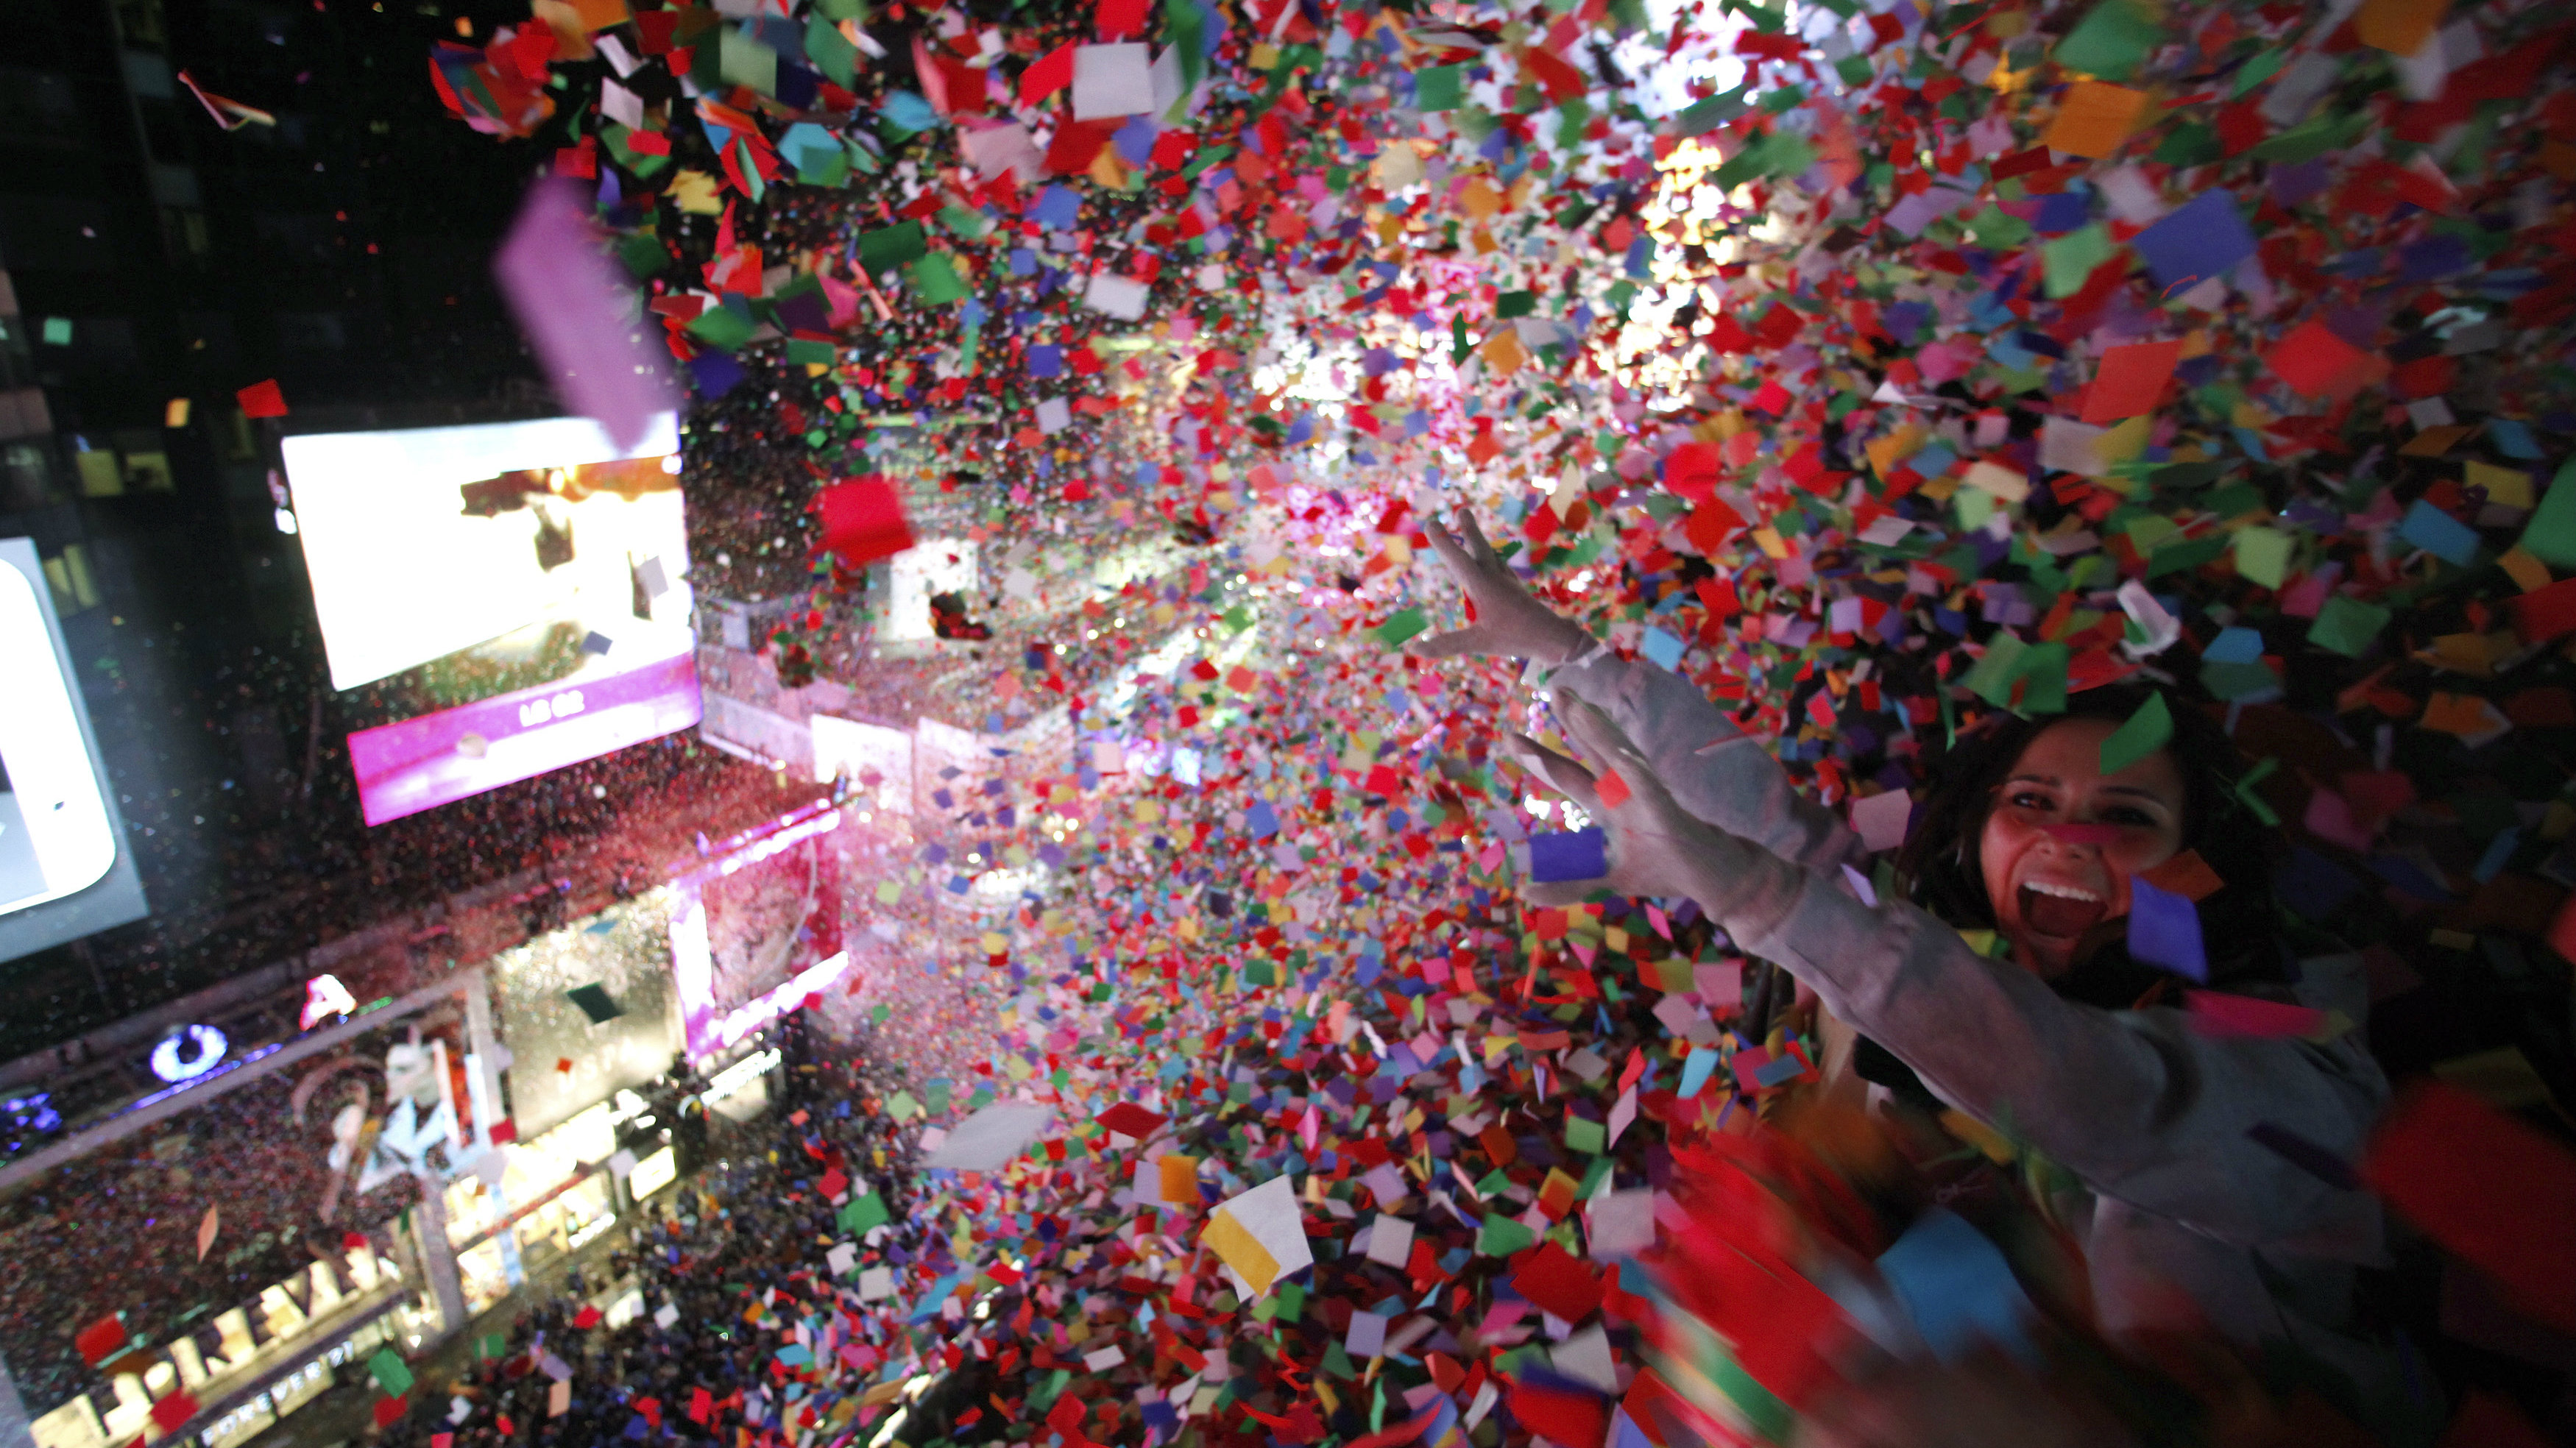 Confetti is dropped on revelers at midnight during New Year's Eve celebrations in Times Square in New York January 1, 2014.